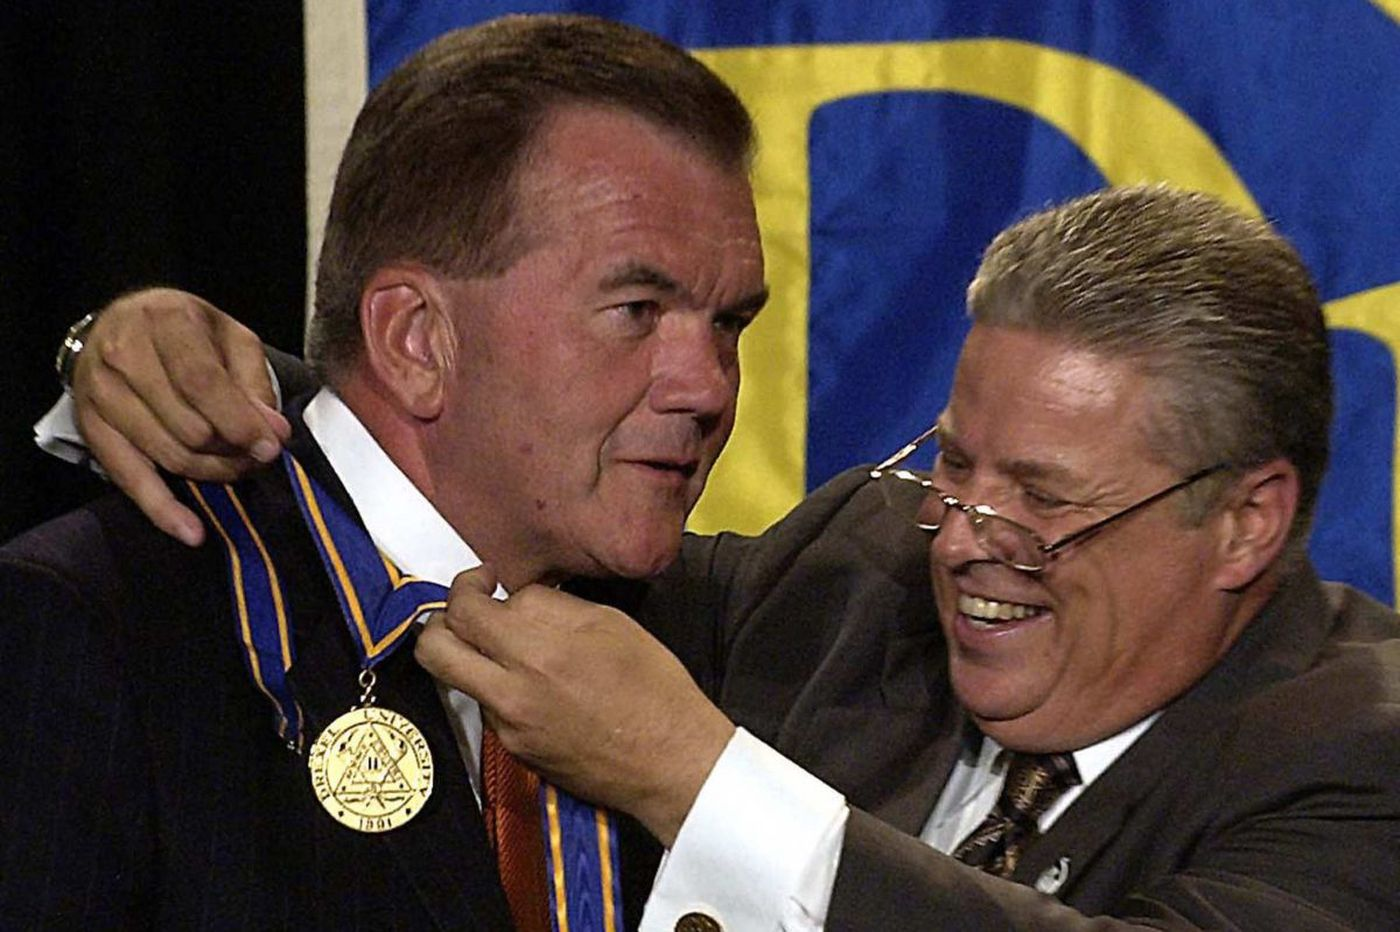 Former Pa. Gov. Tom Ridge recovering from heart attack, remains in critical condition